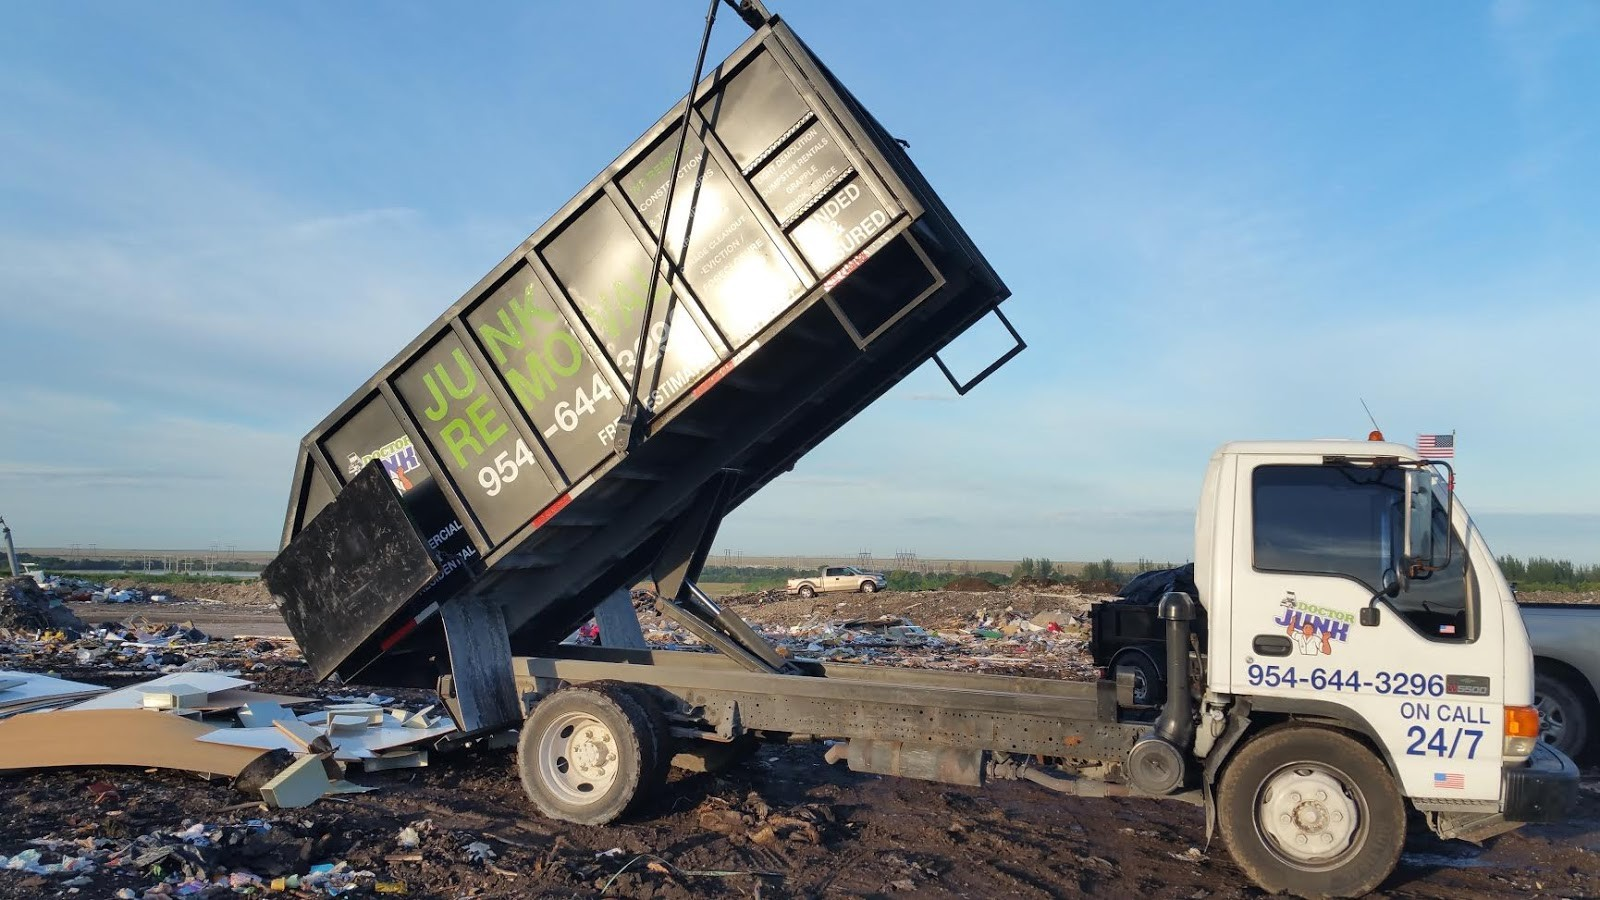 Commercial junk removal companies-Gulf Coast Waste Dumpster Rental Solutions-We Offer Residential and Commercial Dumpster Removal Services, Portable Toilet Services, Dumpster Rentals, Bulk Trash, Demolition Removal, Junk Hauling, Rubbish Removal, Waste Containers, Debris Removal, 20 & 30 Yard Container Rentals, and much more!